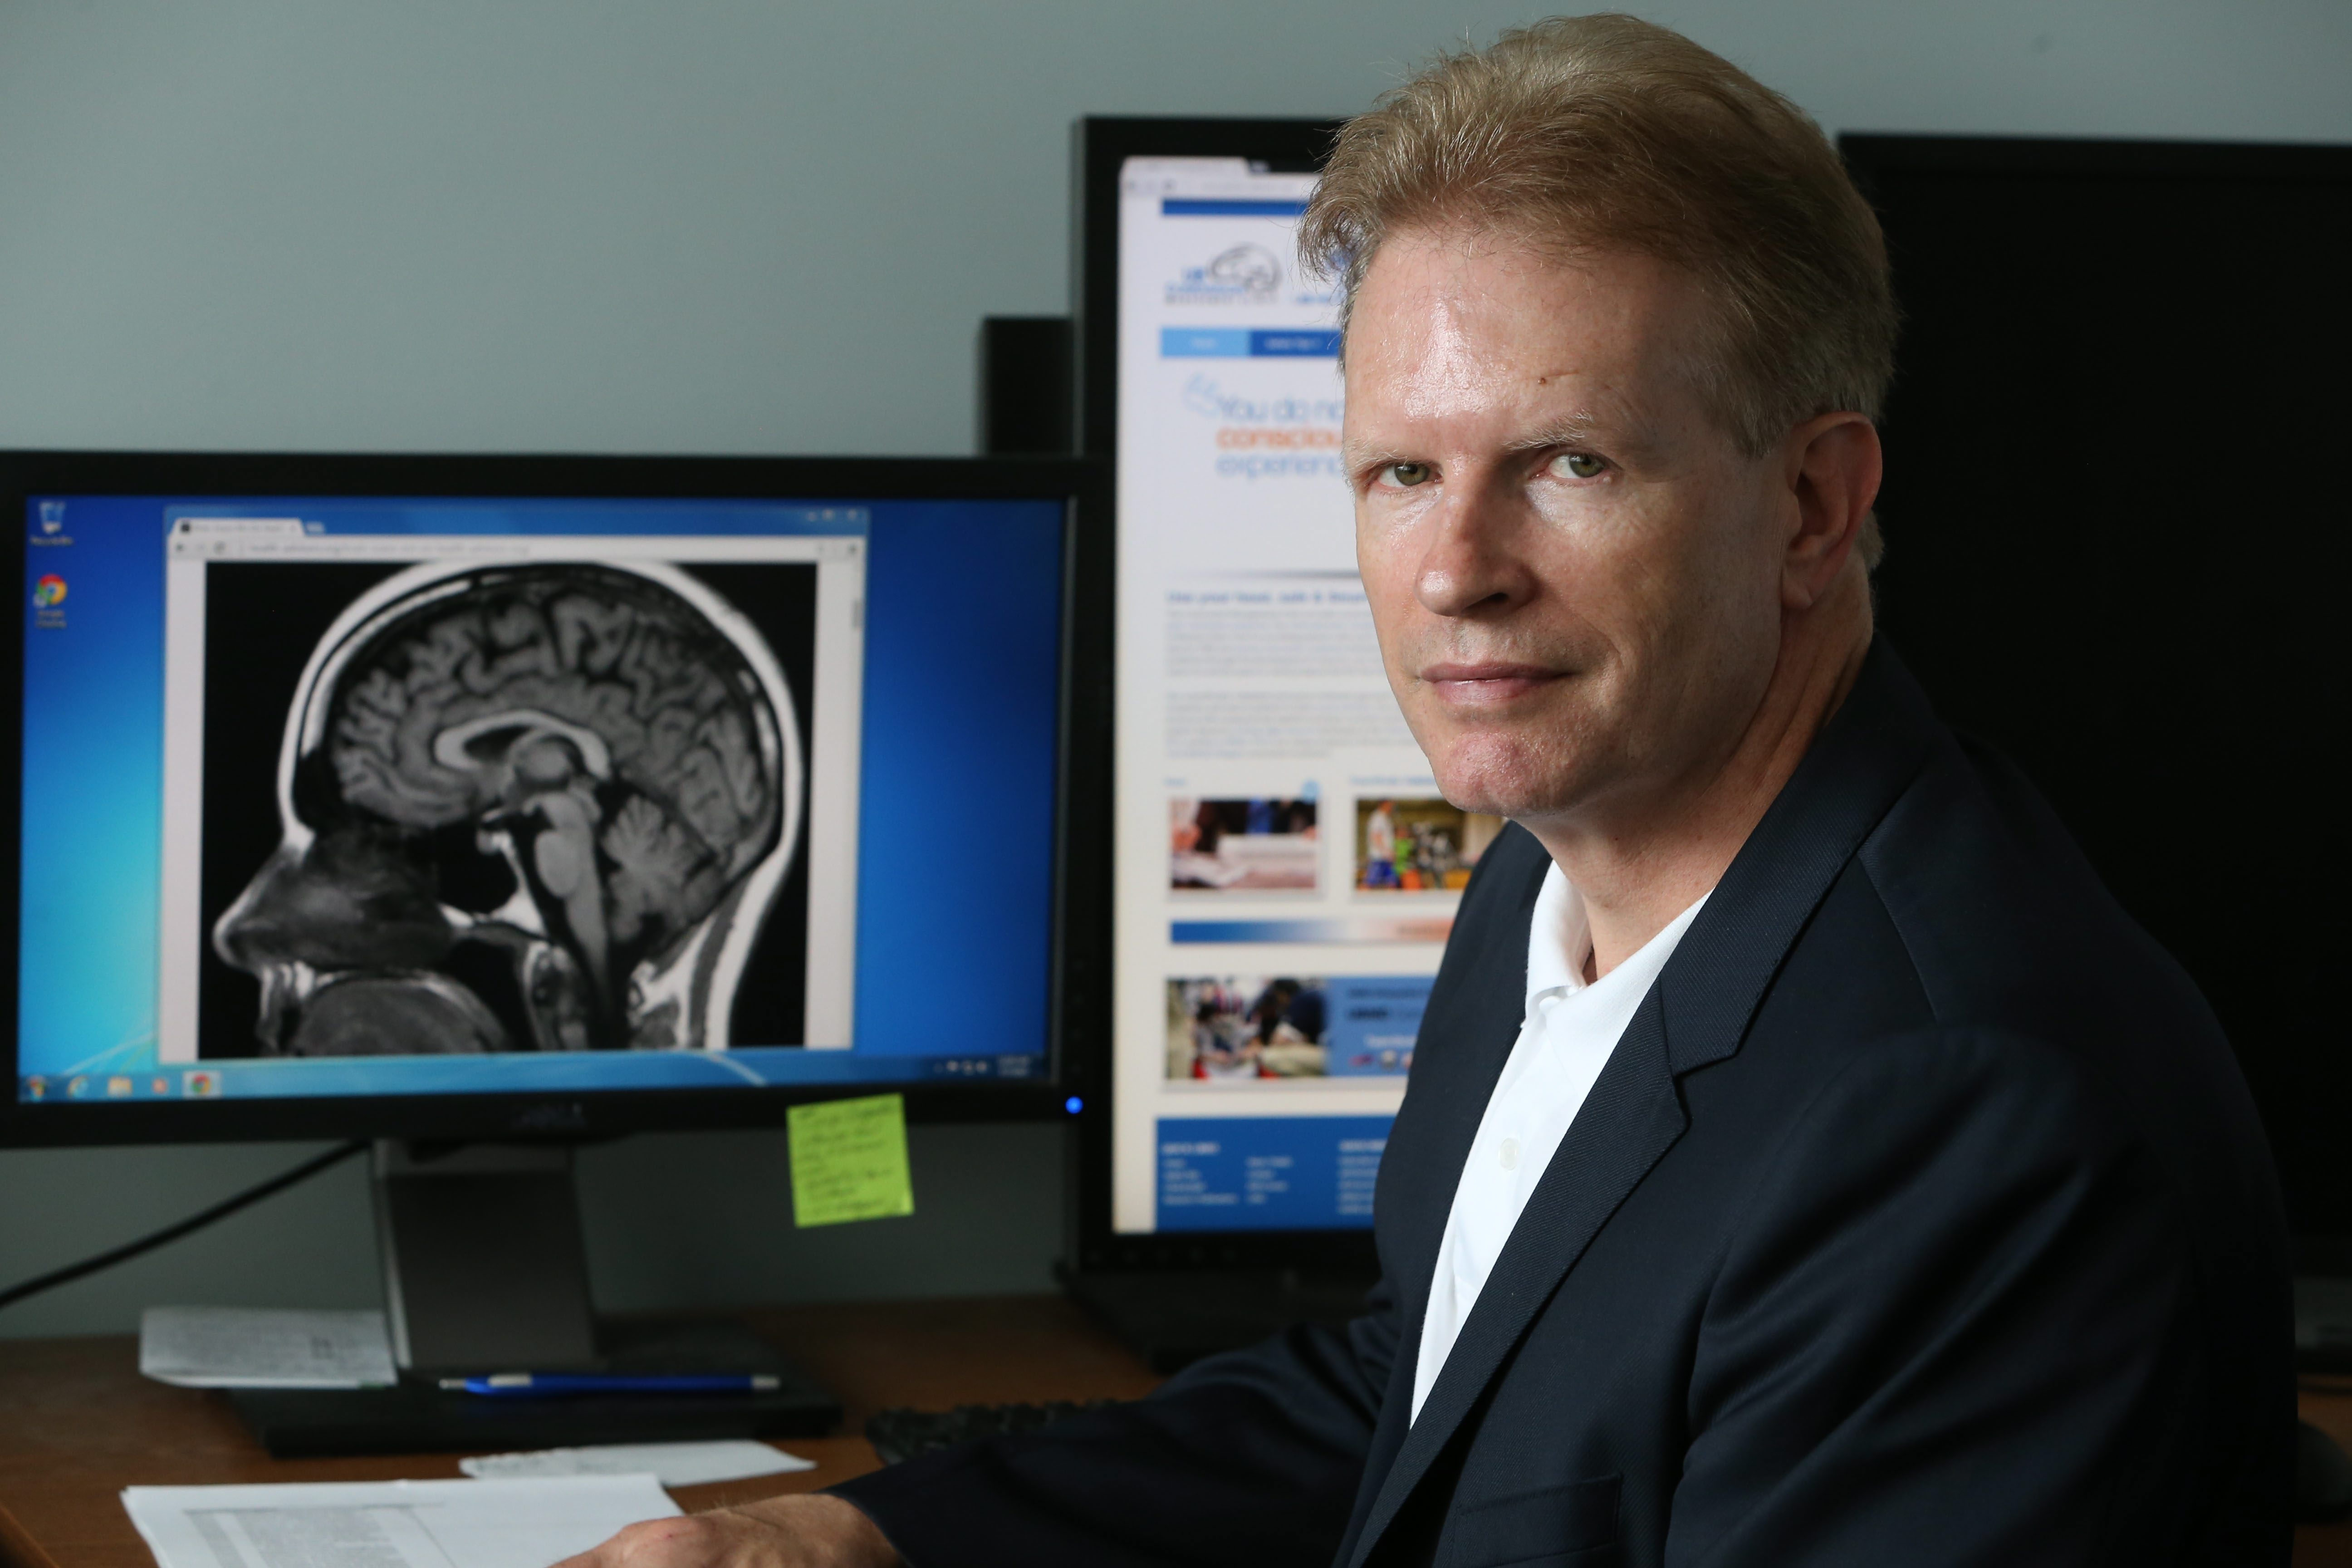 Dr. John Leddy is the medical director of the UB Concussion Management Clinic and is the principal investigator on a study of whether exercise may speed recovery from concussions. (Sharon Cantillon/Buffalo News)